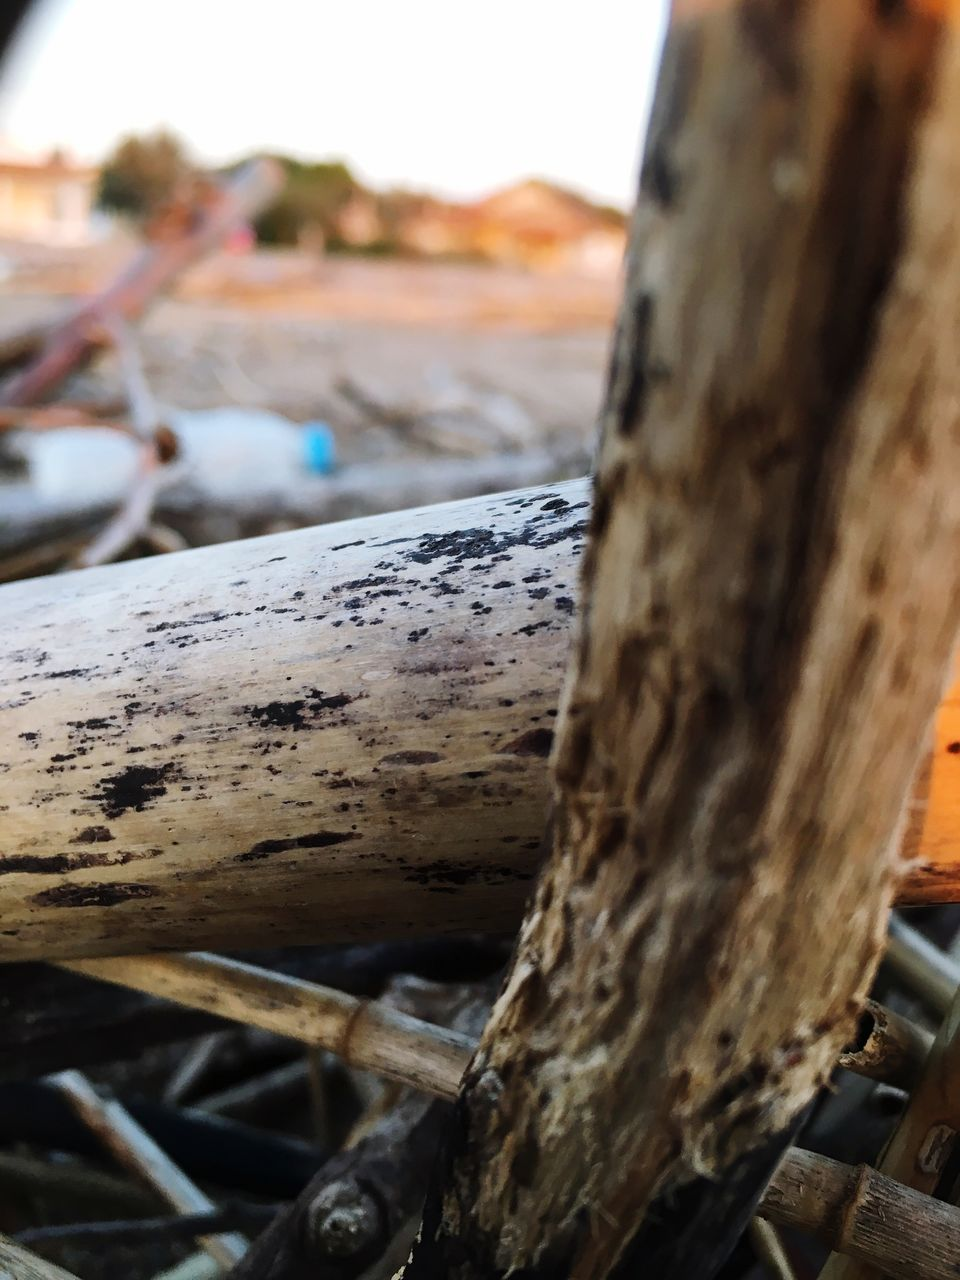 tree trunk, wood - material, focus on foreground, close-up, tree, textured, day, log, no people, outdoors, nature, sky